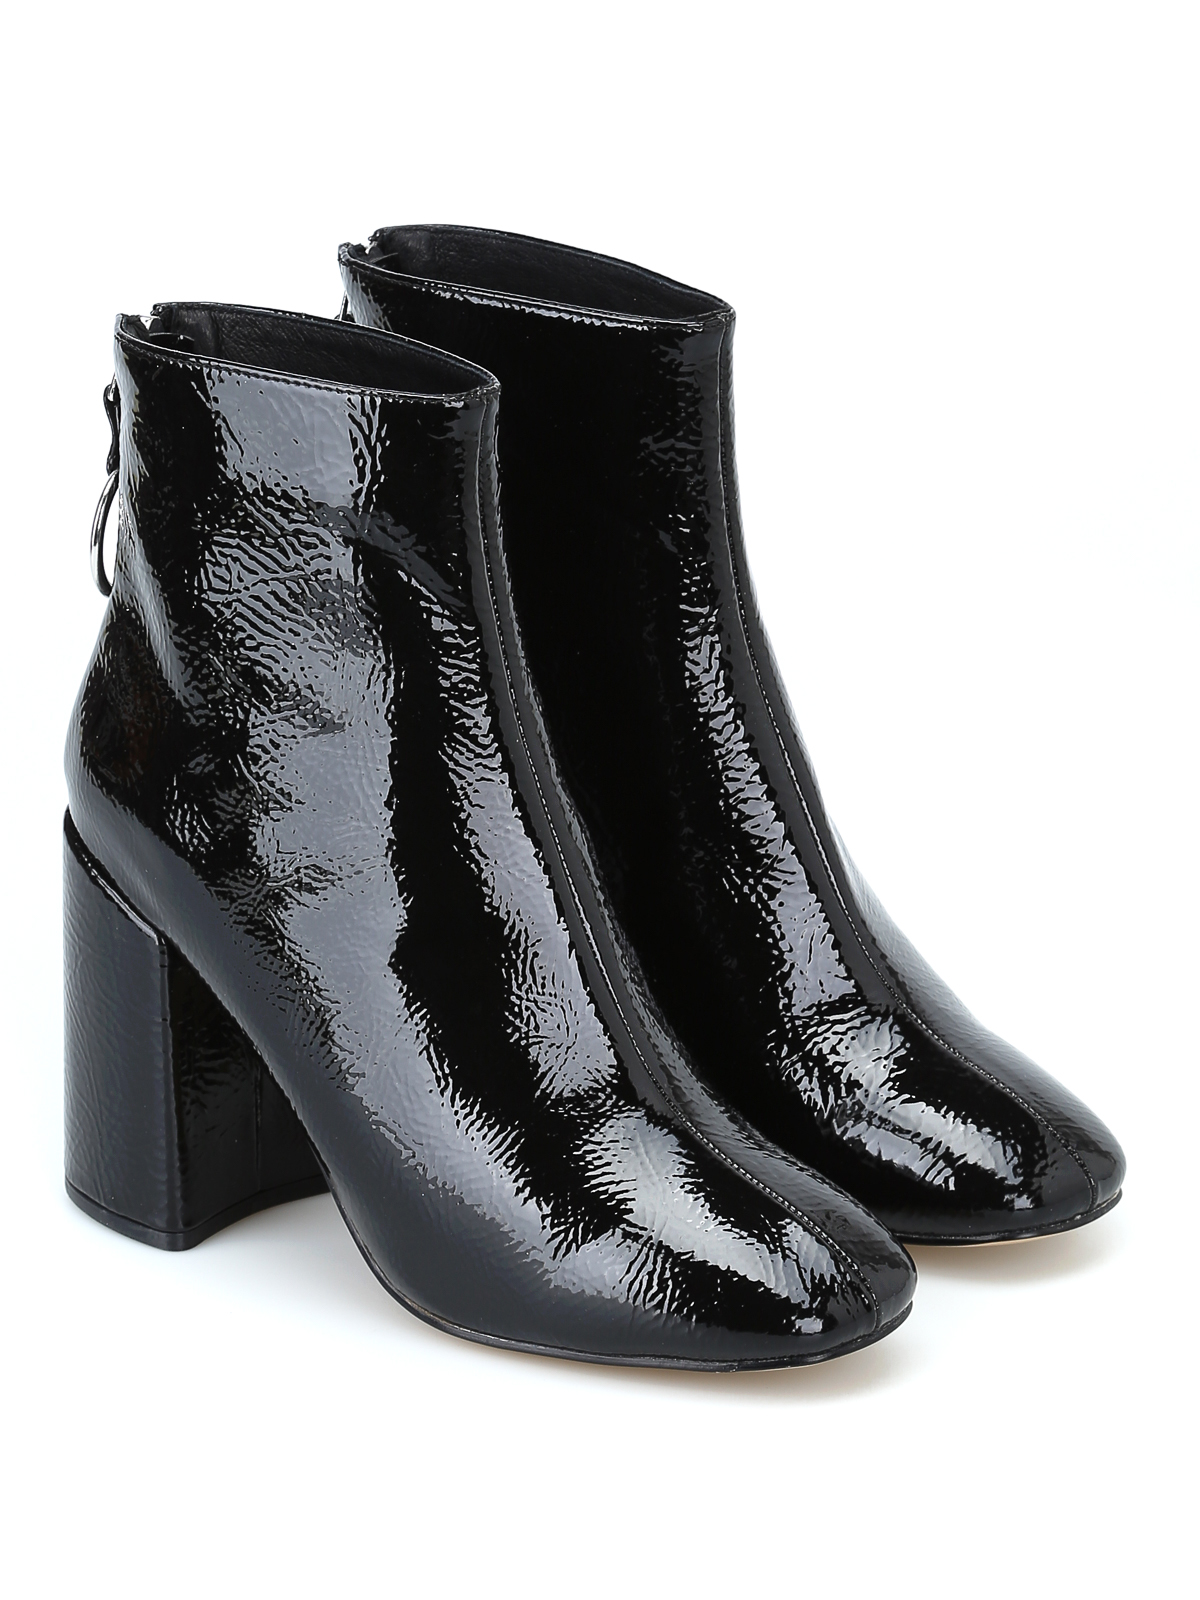 8ba4b46a6d4 Steve Madden  ankle boots online - Posed black faux patent ankle boots